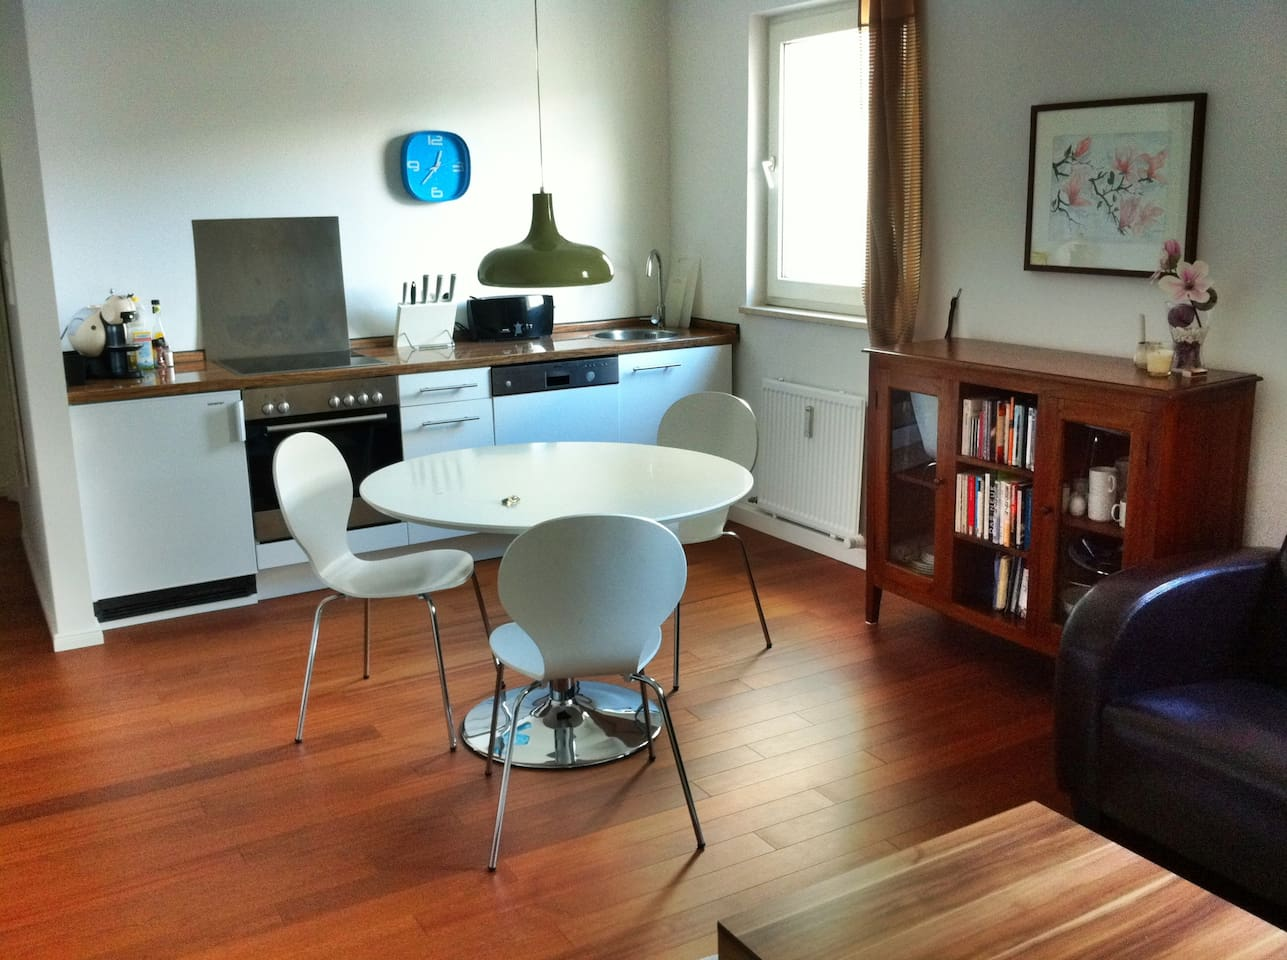 Living Room with kitchen and dining table.